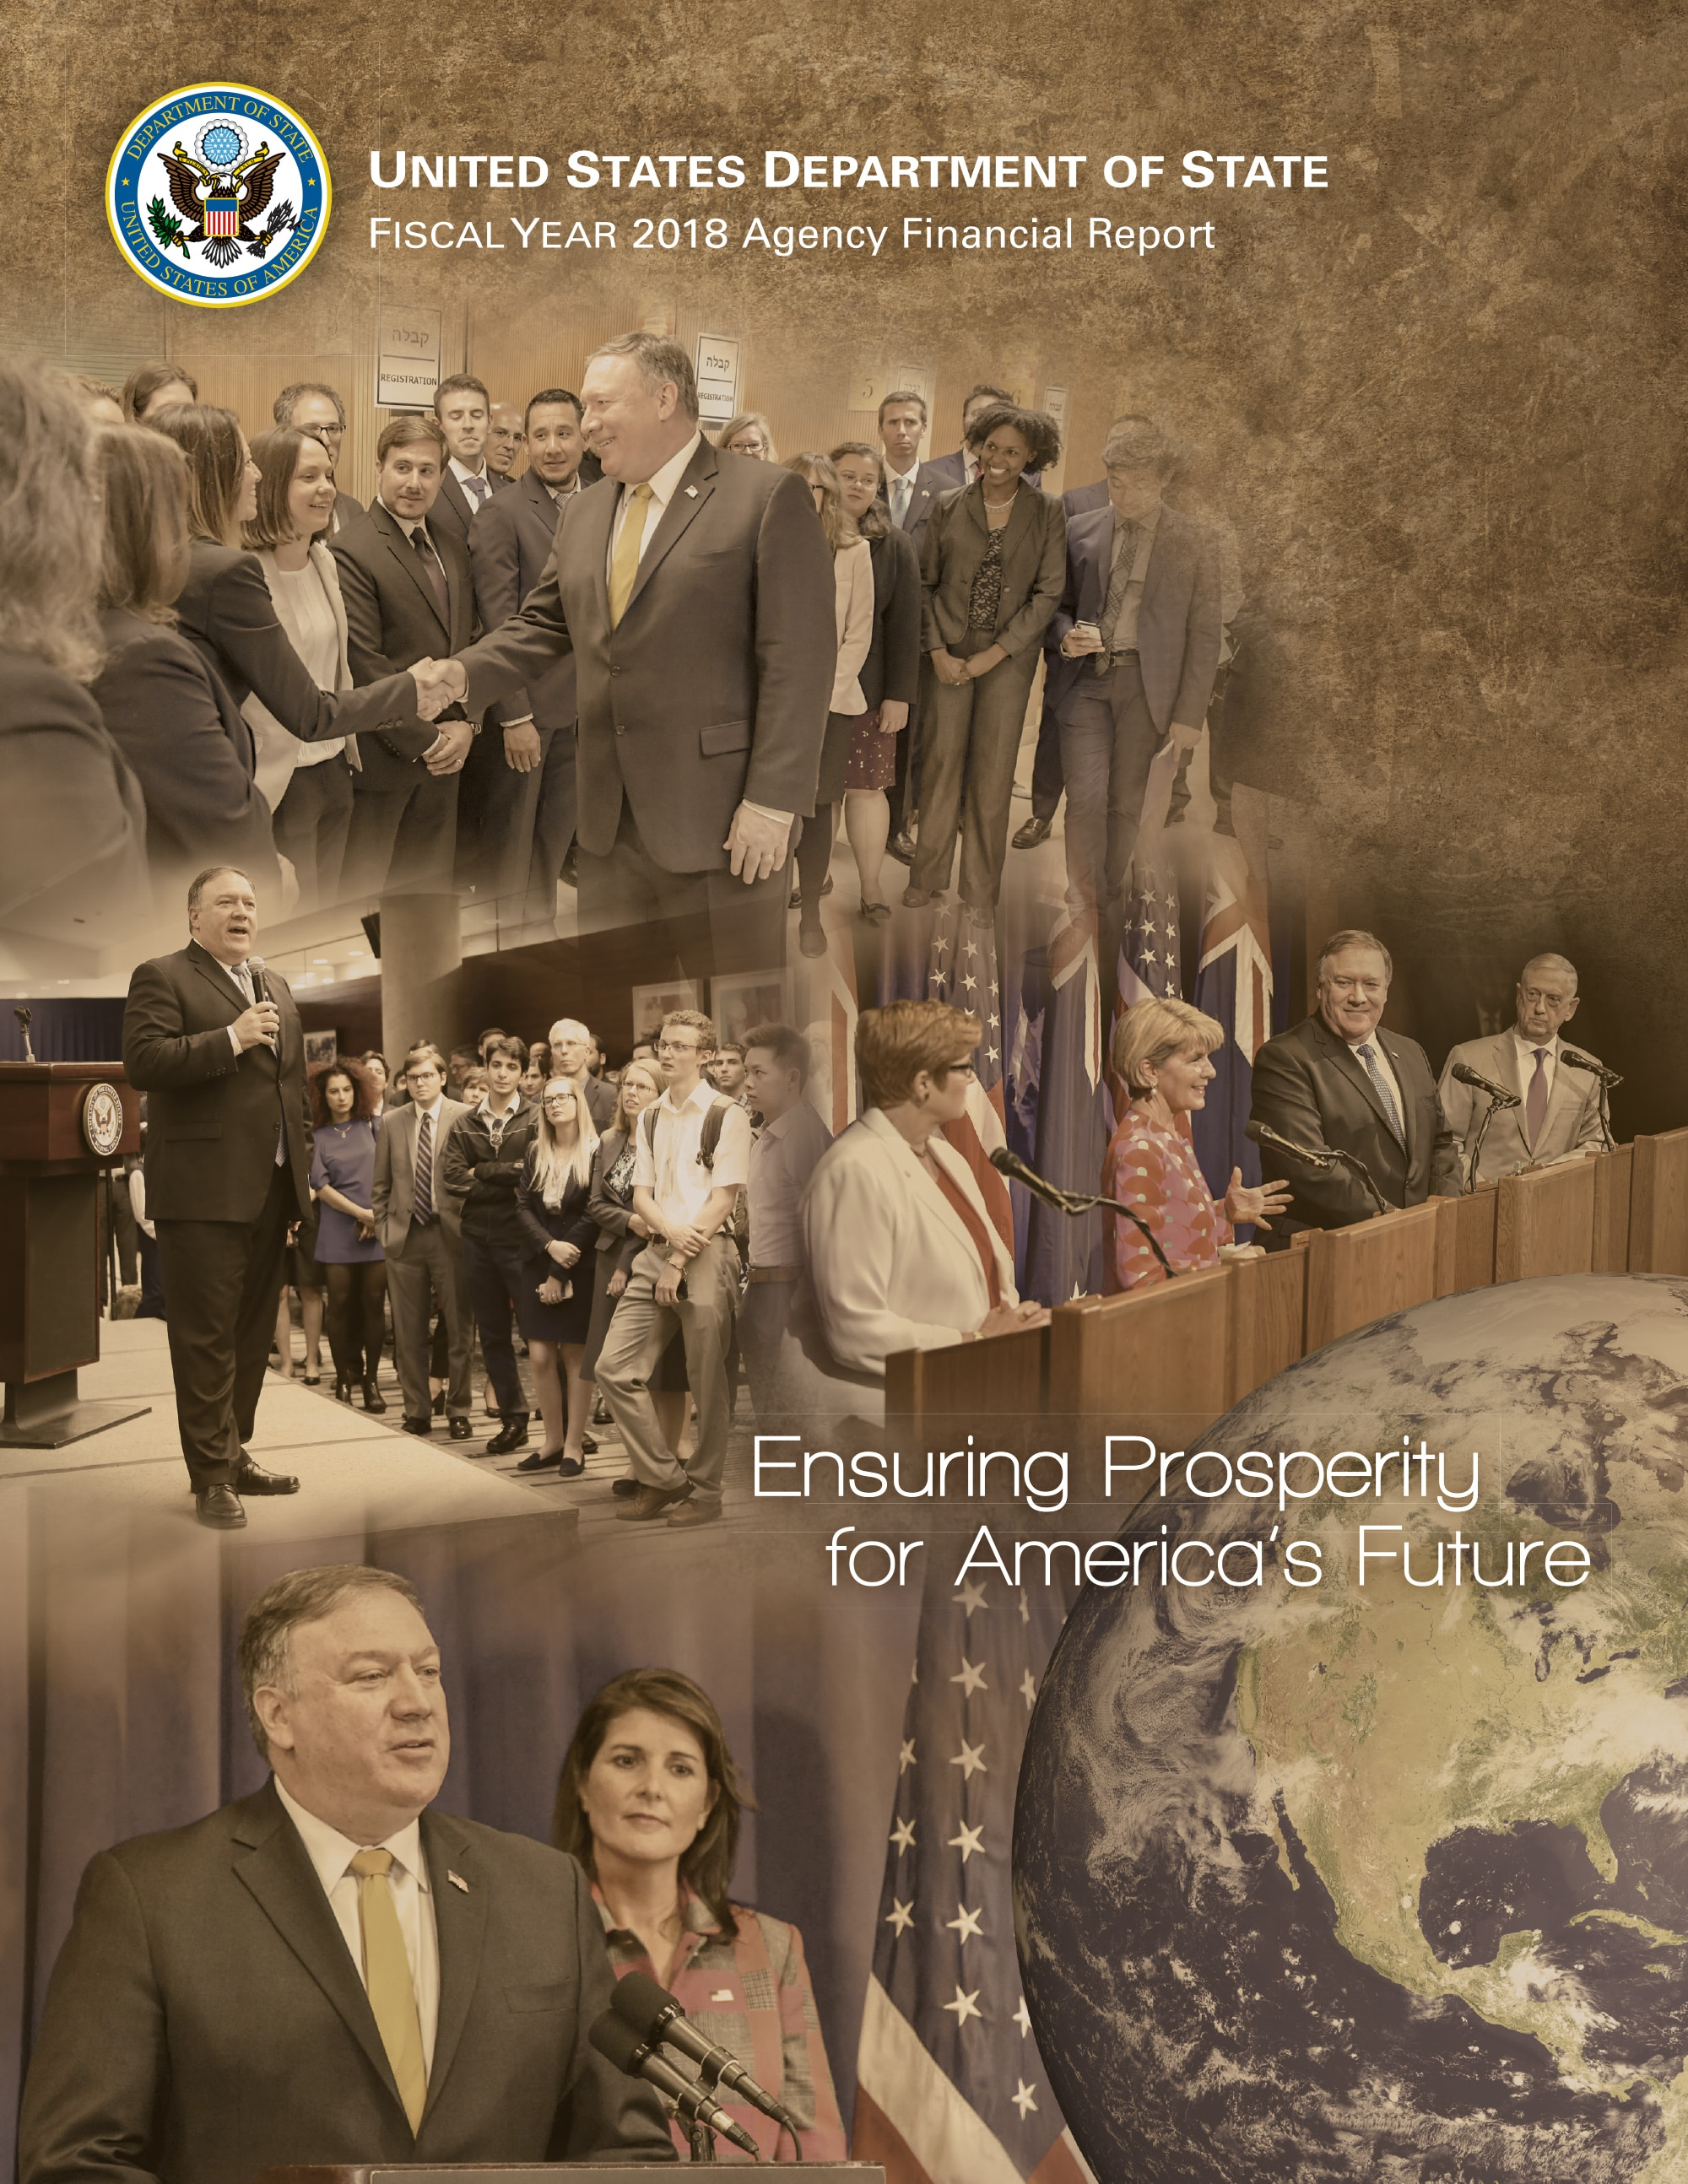 Photo showing the U.S. Department of State Fiscal Year 2018 Agency Financial Report cover.